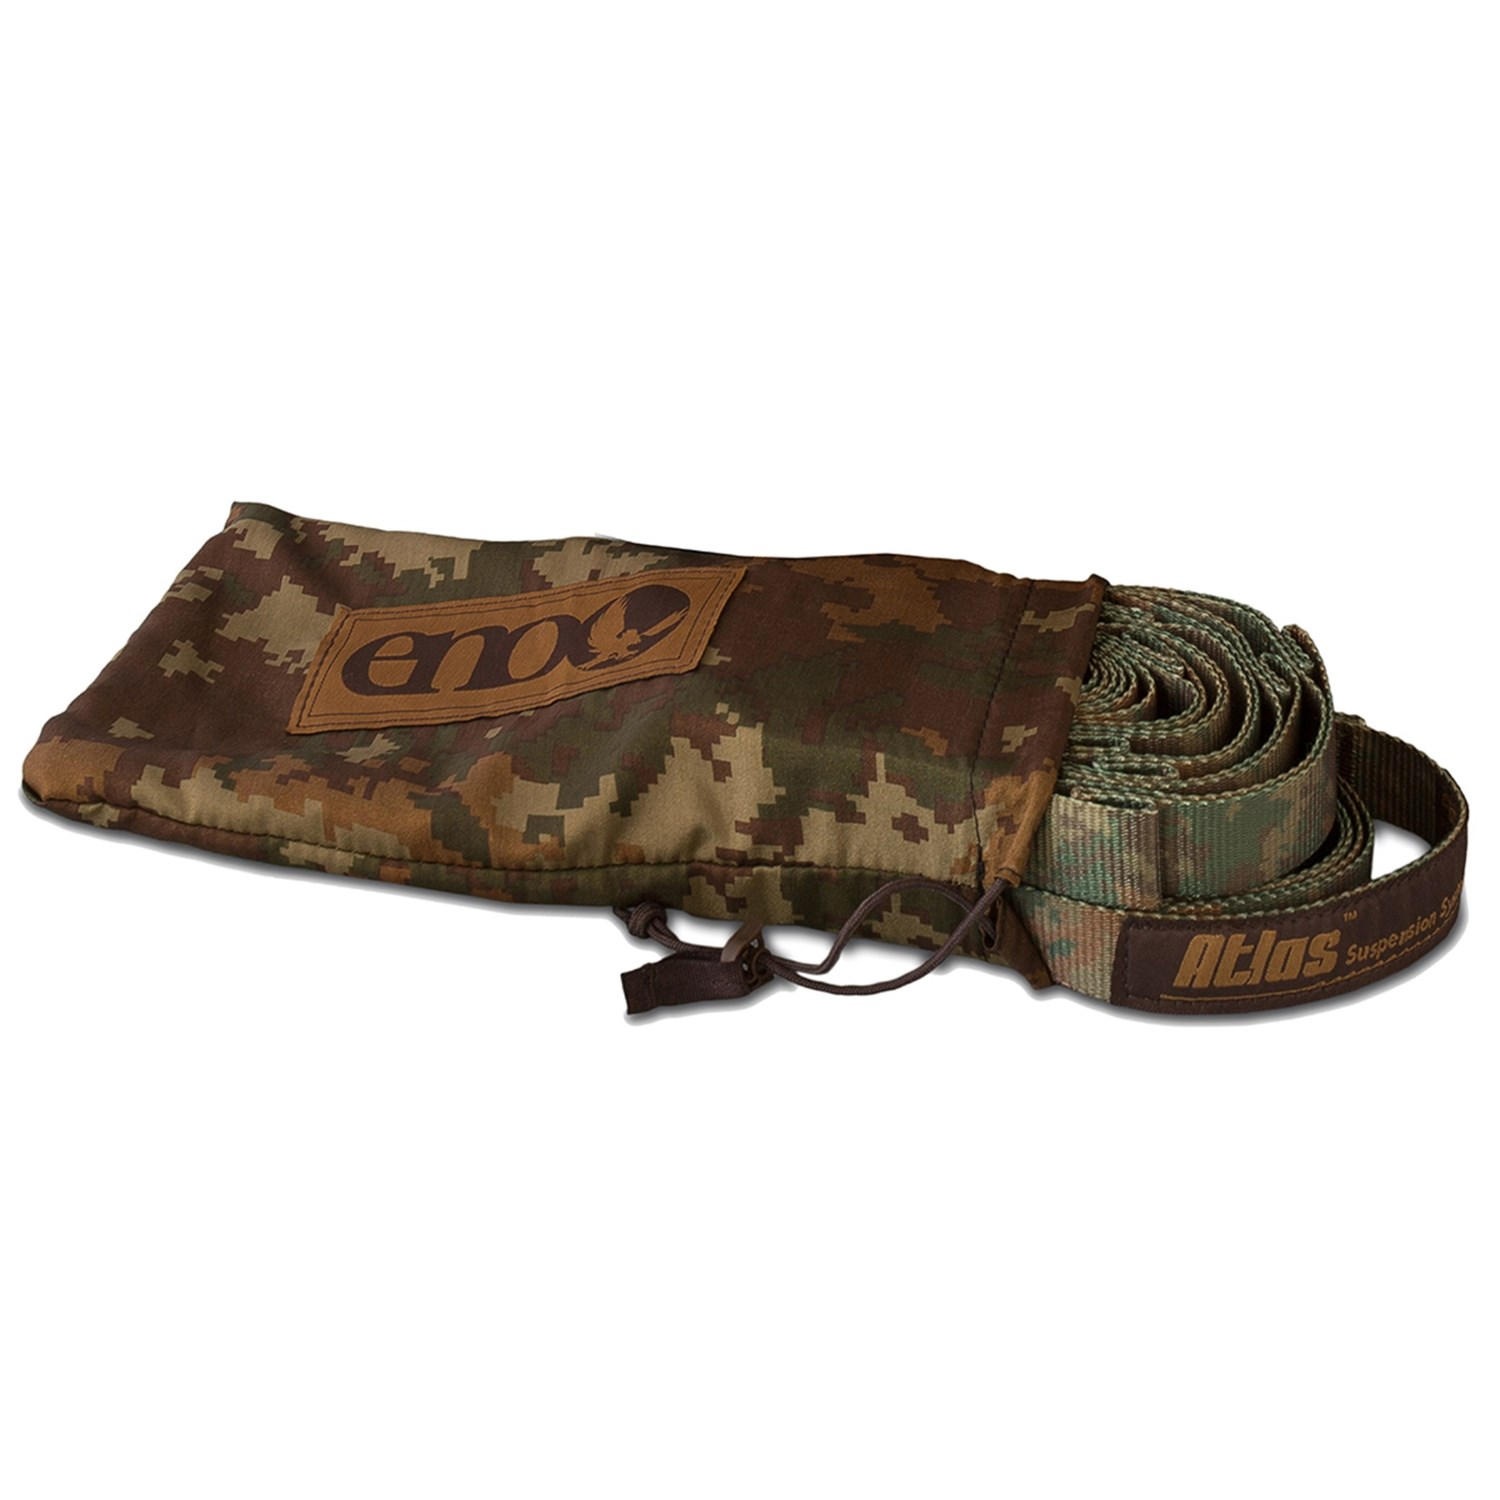 Medium image of eno atlas camo hammock straps